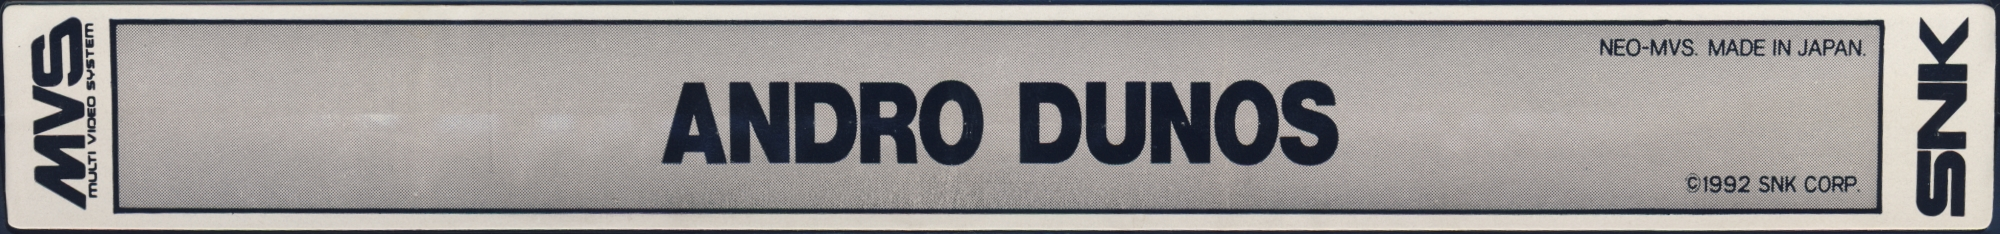 Andro dunos us label.jpg